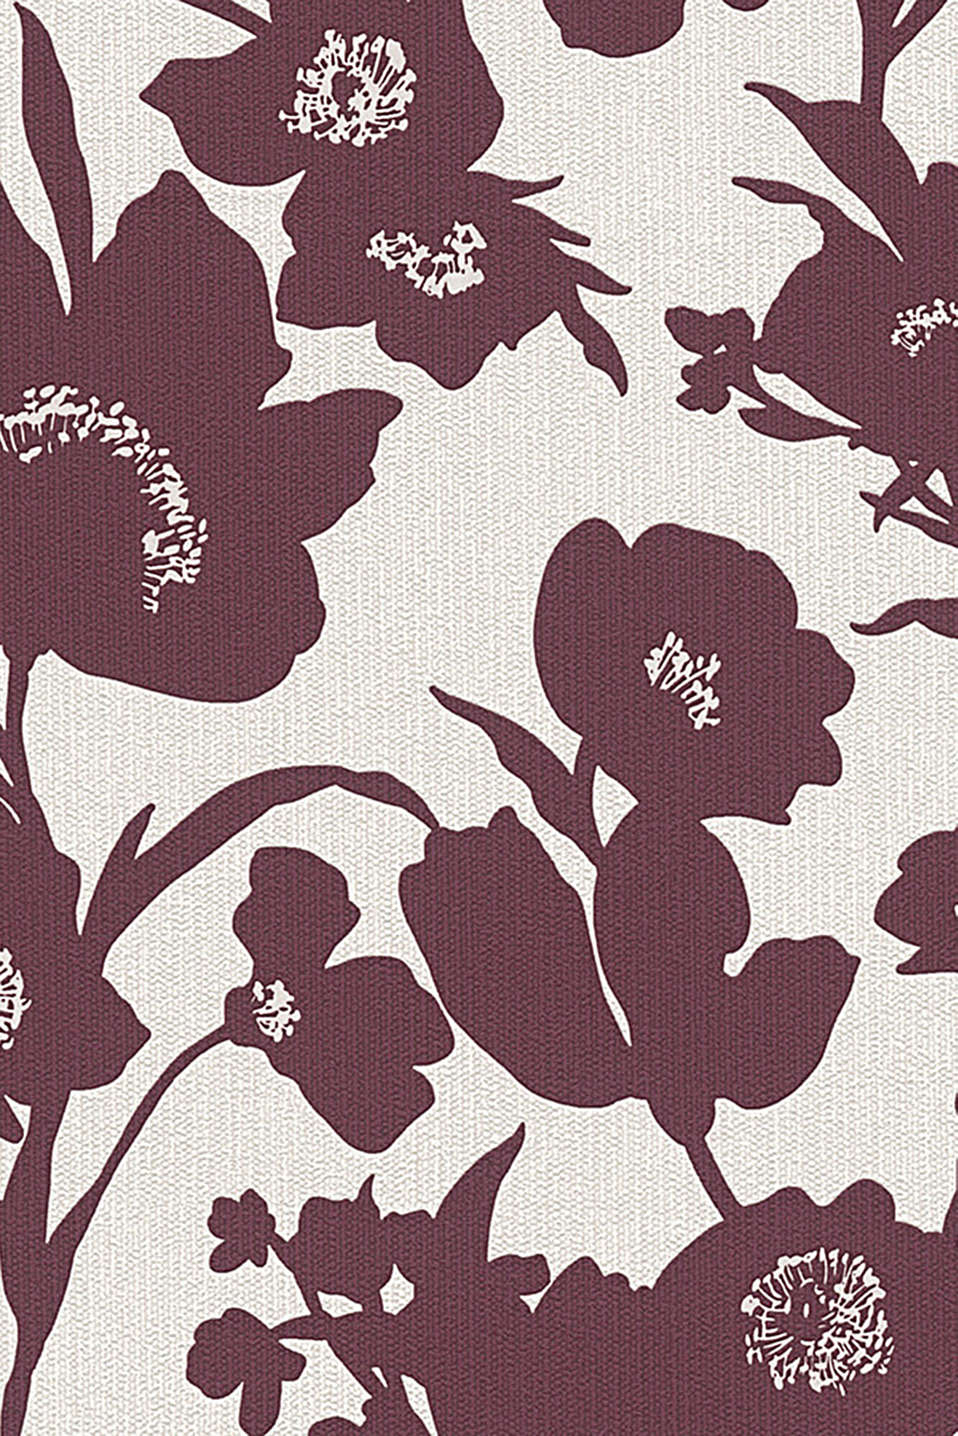 Esprit - Non-woven wallpaper in a floral design